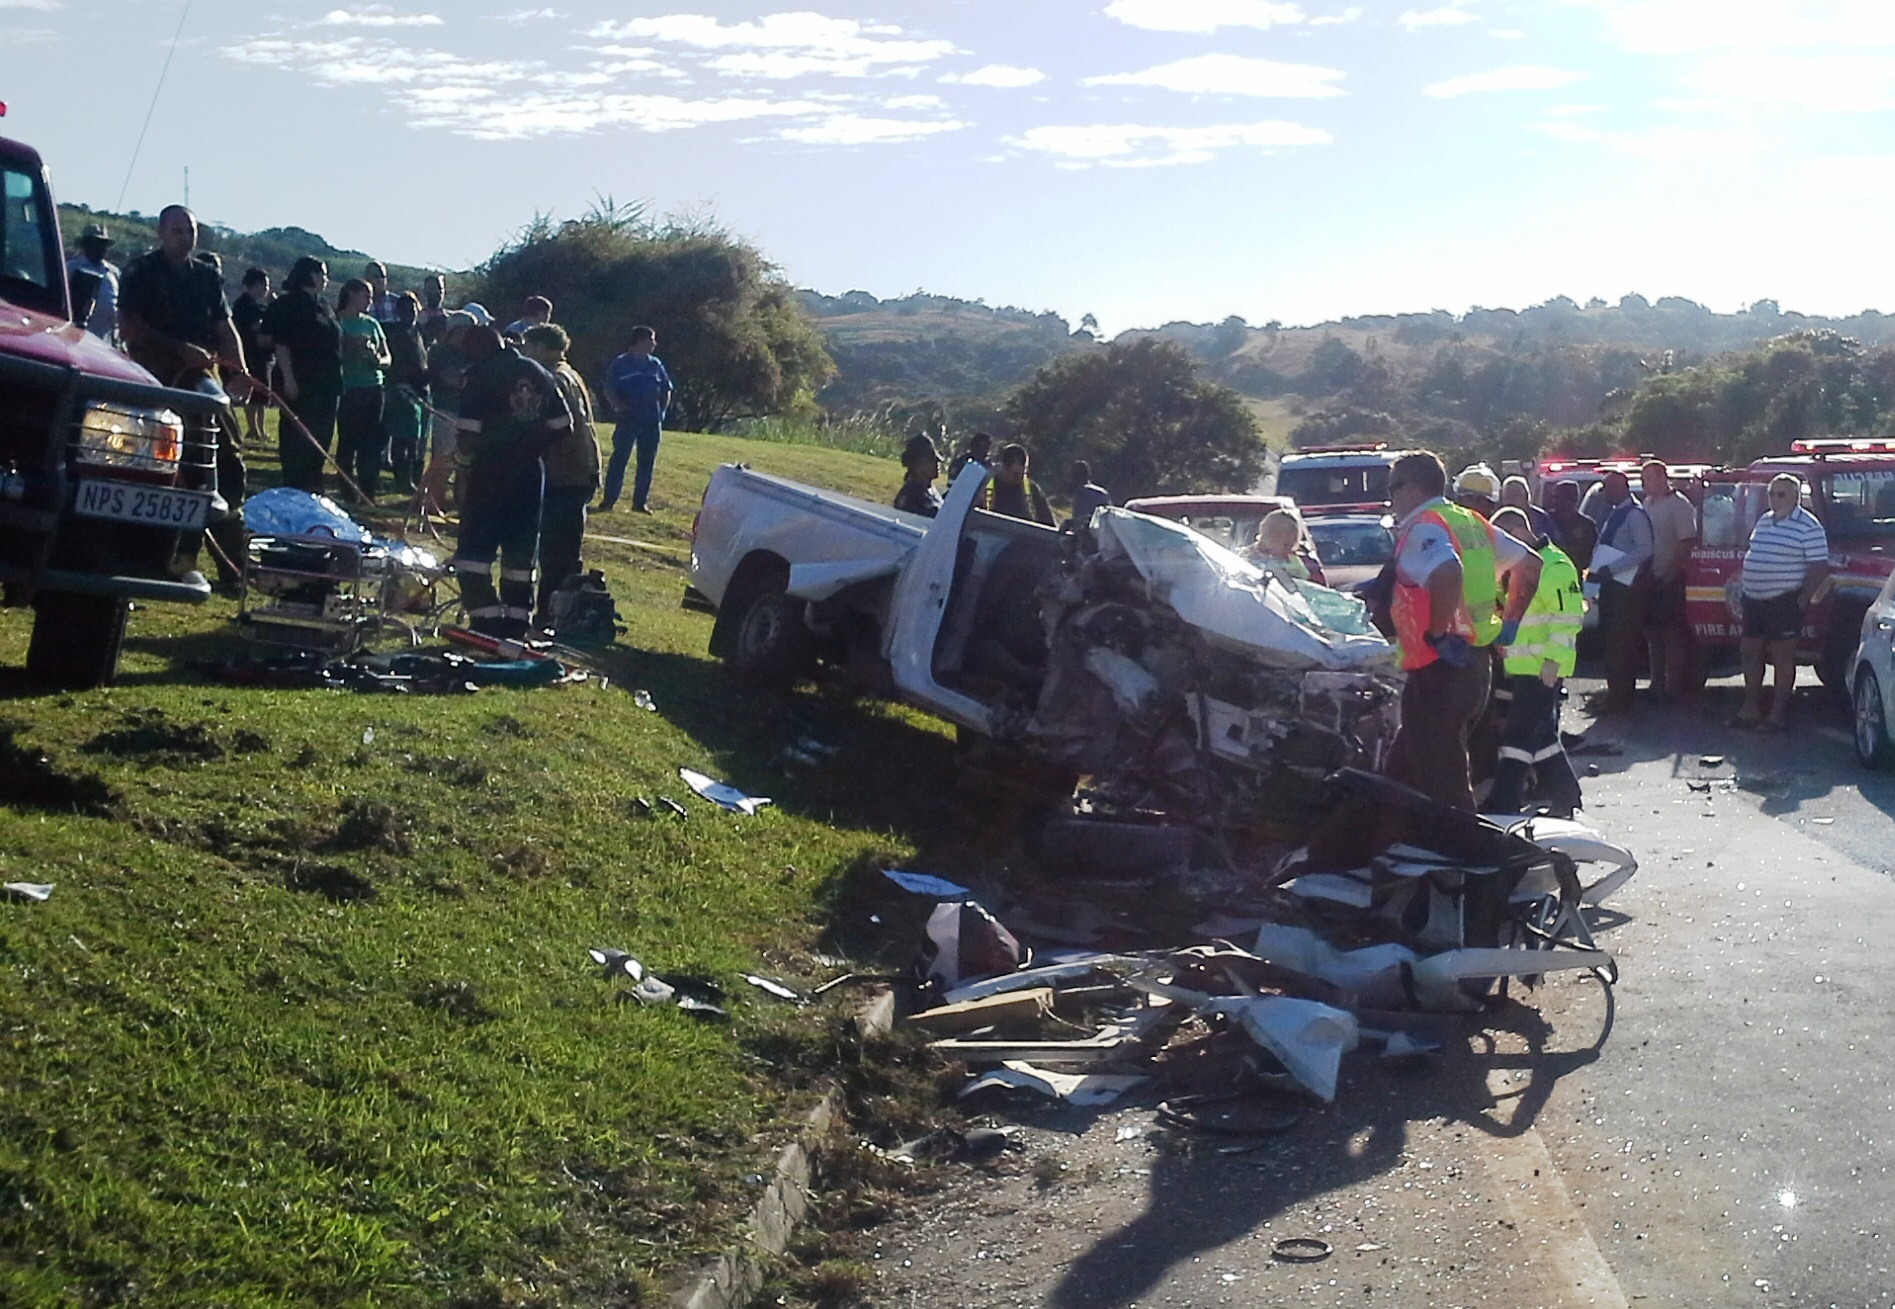 R61 south coast accident leaves one dead – 3 injured | Road